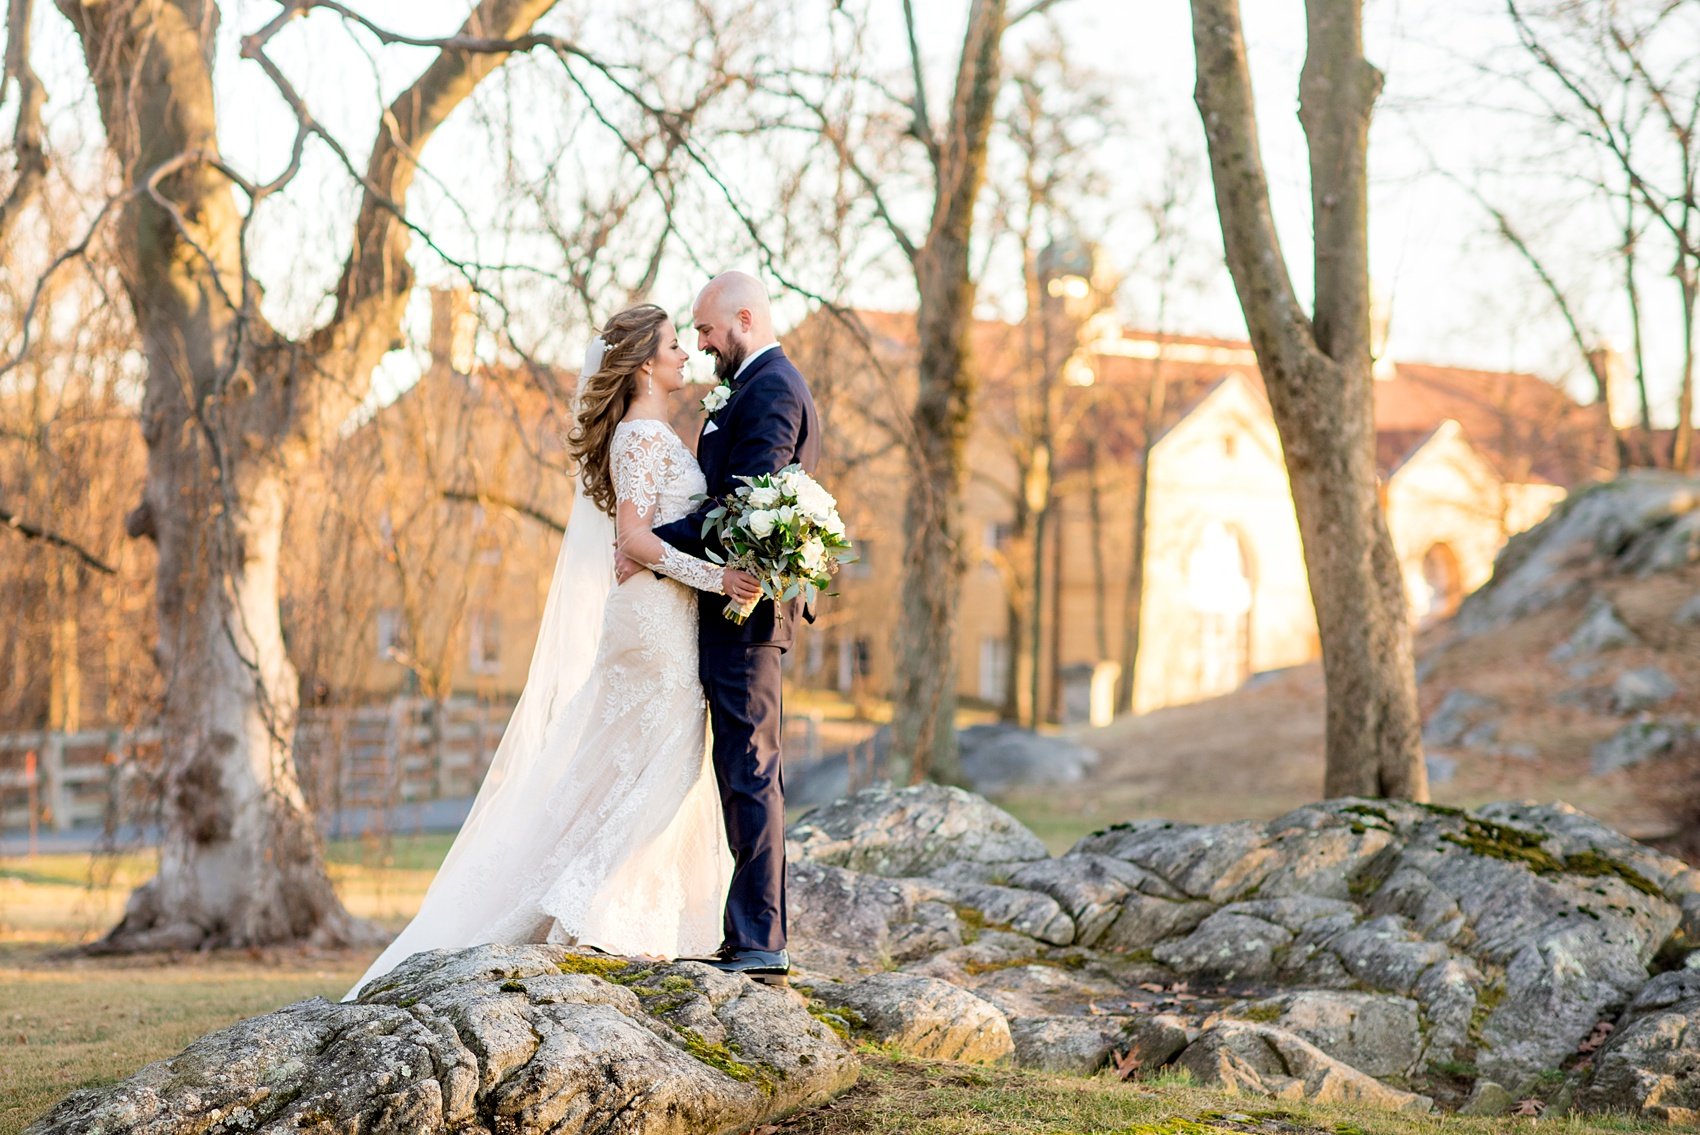 Wedding photos at Sleepy Hollow Country Club for a winter reception in January by Mikkel Paige Photography. A picture of the bride in her long sleeve, lace gown and groom in his navy blue tuxedo, looking at each other during their portraits.